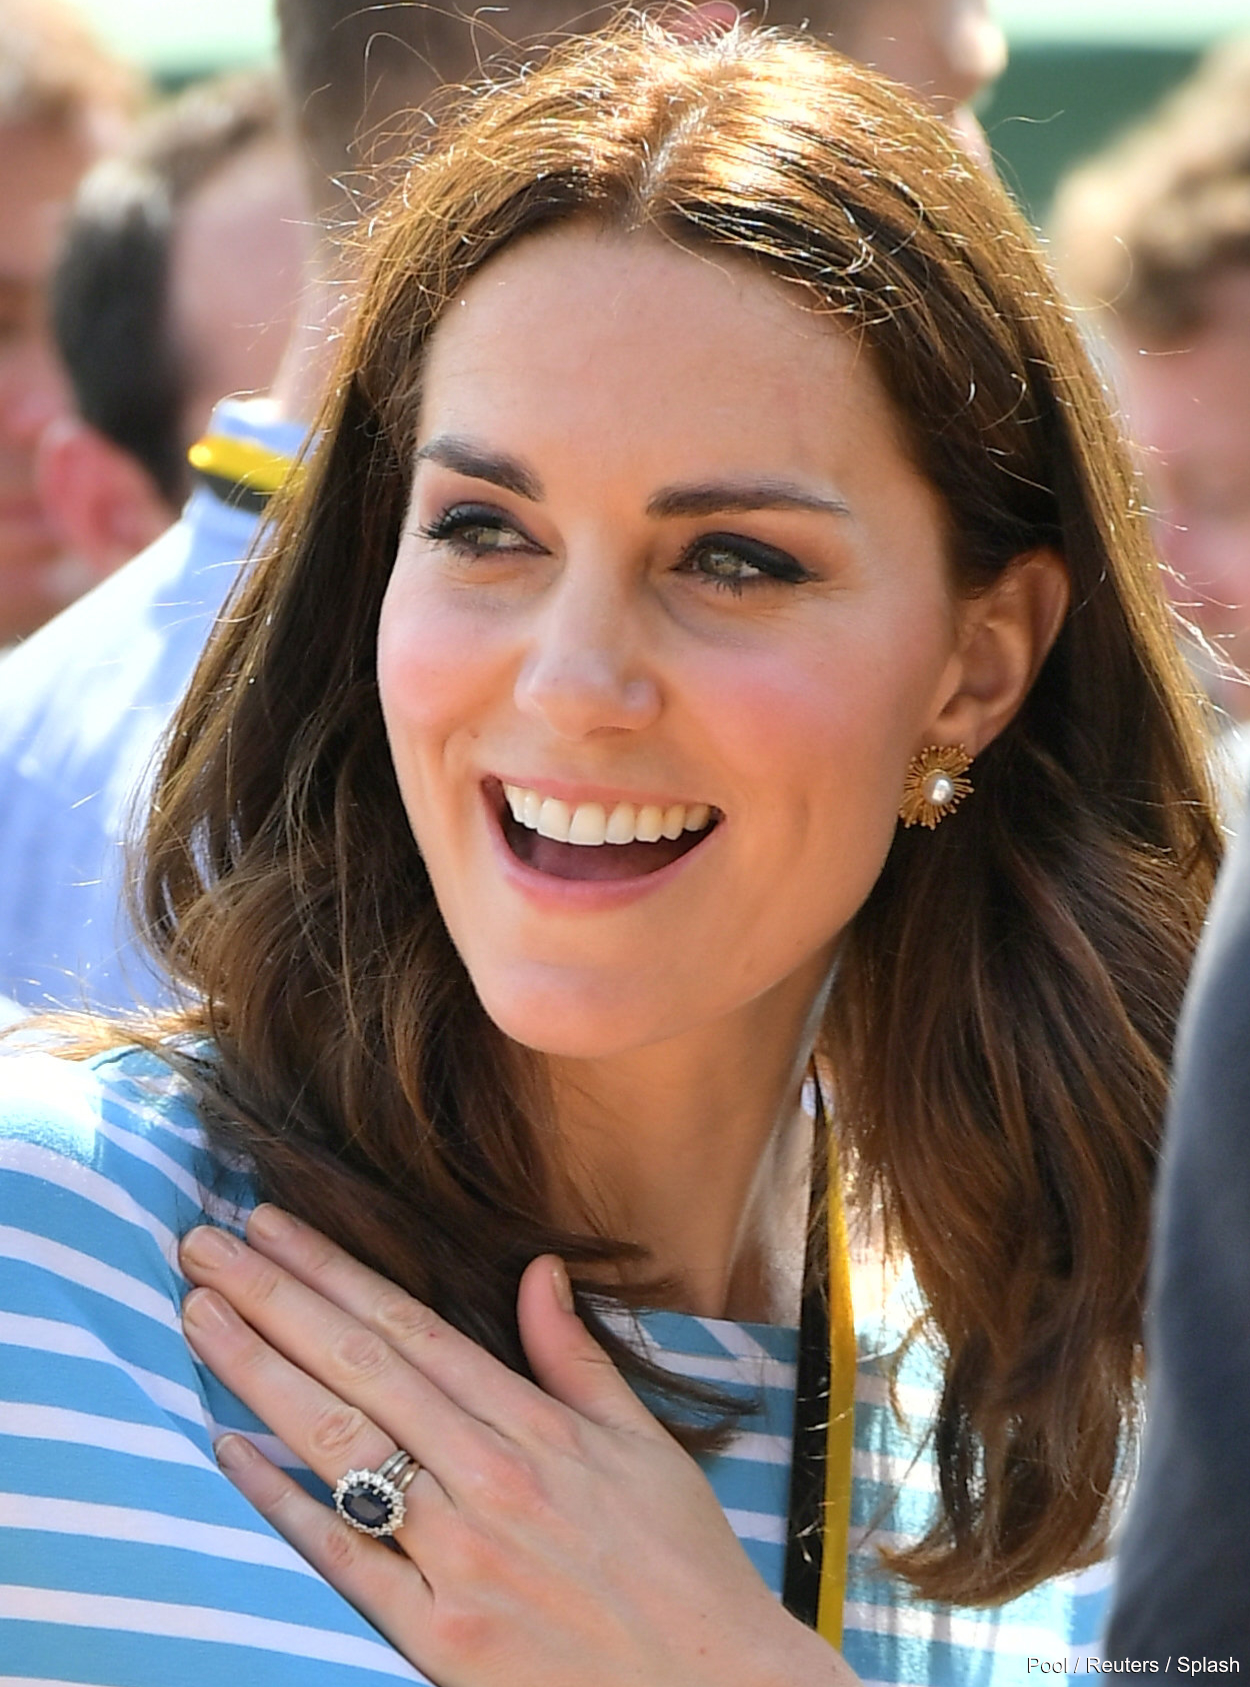 Duchess of Cambridge (Kate Middleton) with her engagement ring in Germany